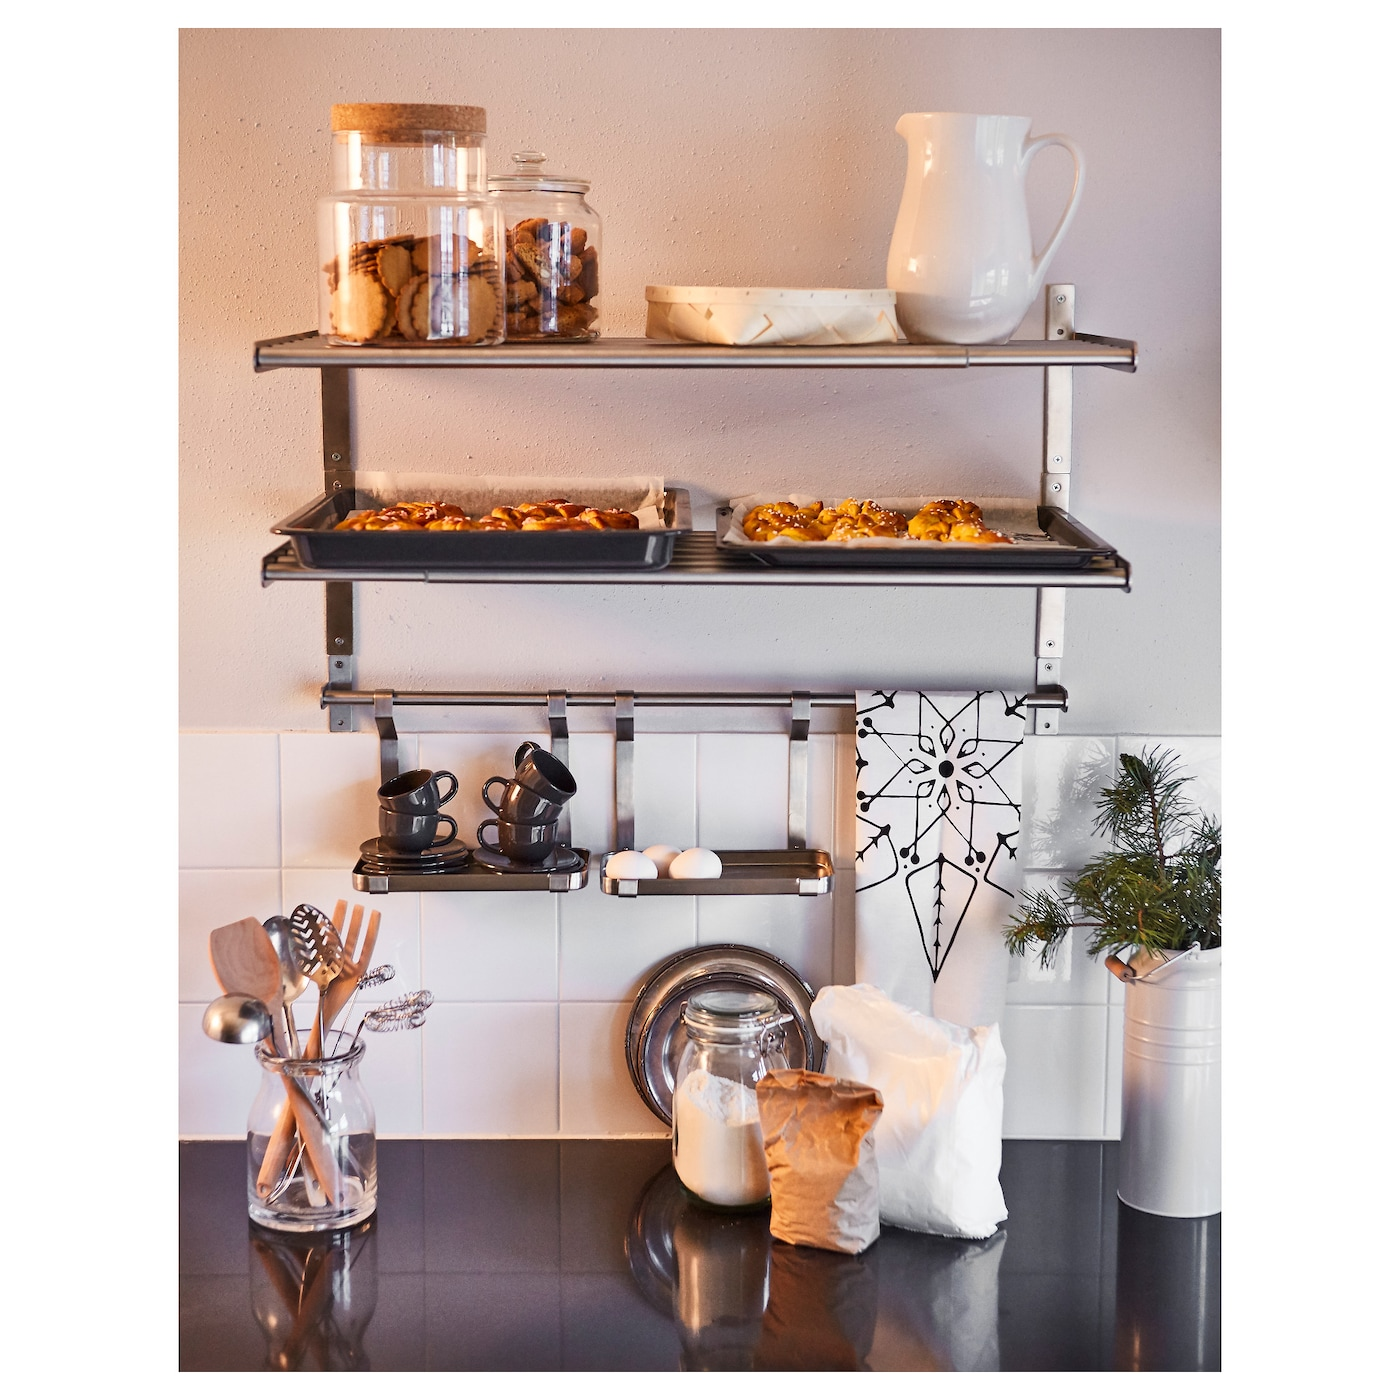 Shelves For Kitchen Wall: GRUNDTAL Wall Shelf Stainless Steel 80 Cm